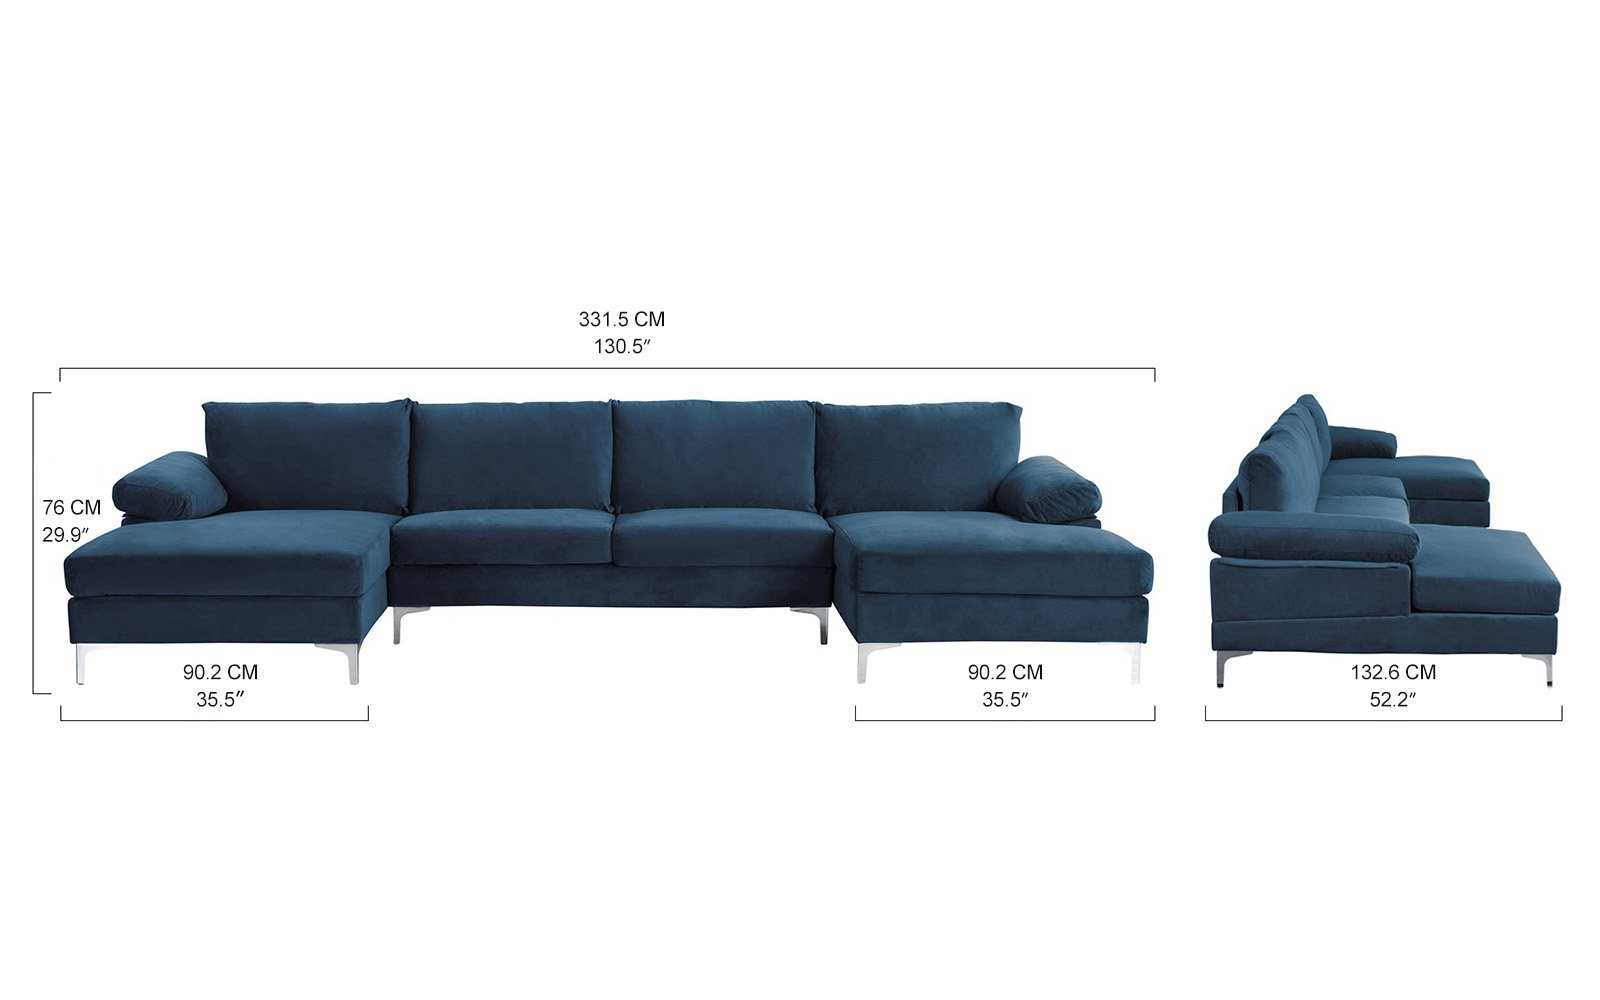 Enjoyable Details About Modern Large Velvet U Shape Sectional Sofa Double Extra Wide Chaise Lounge Navy Inzonedesignstudio Interior Chair Design Inzonedesignstudiocom